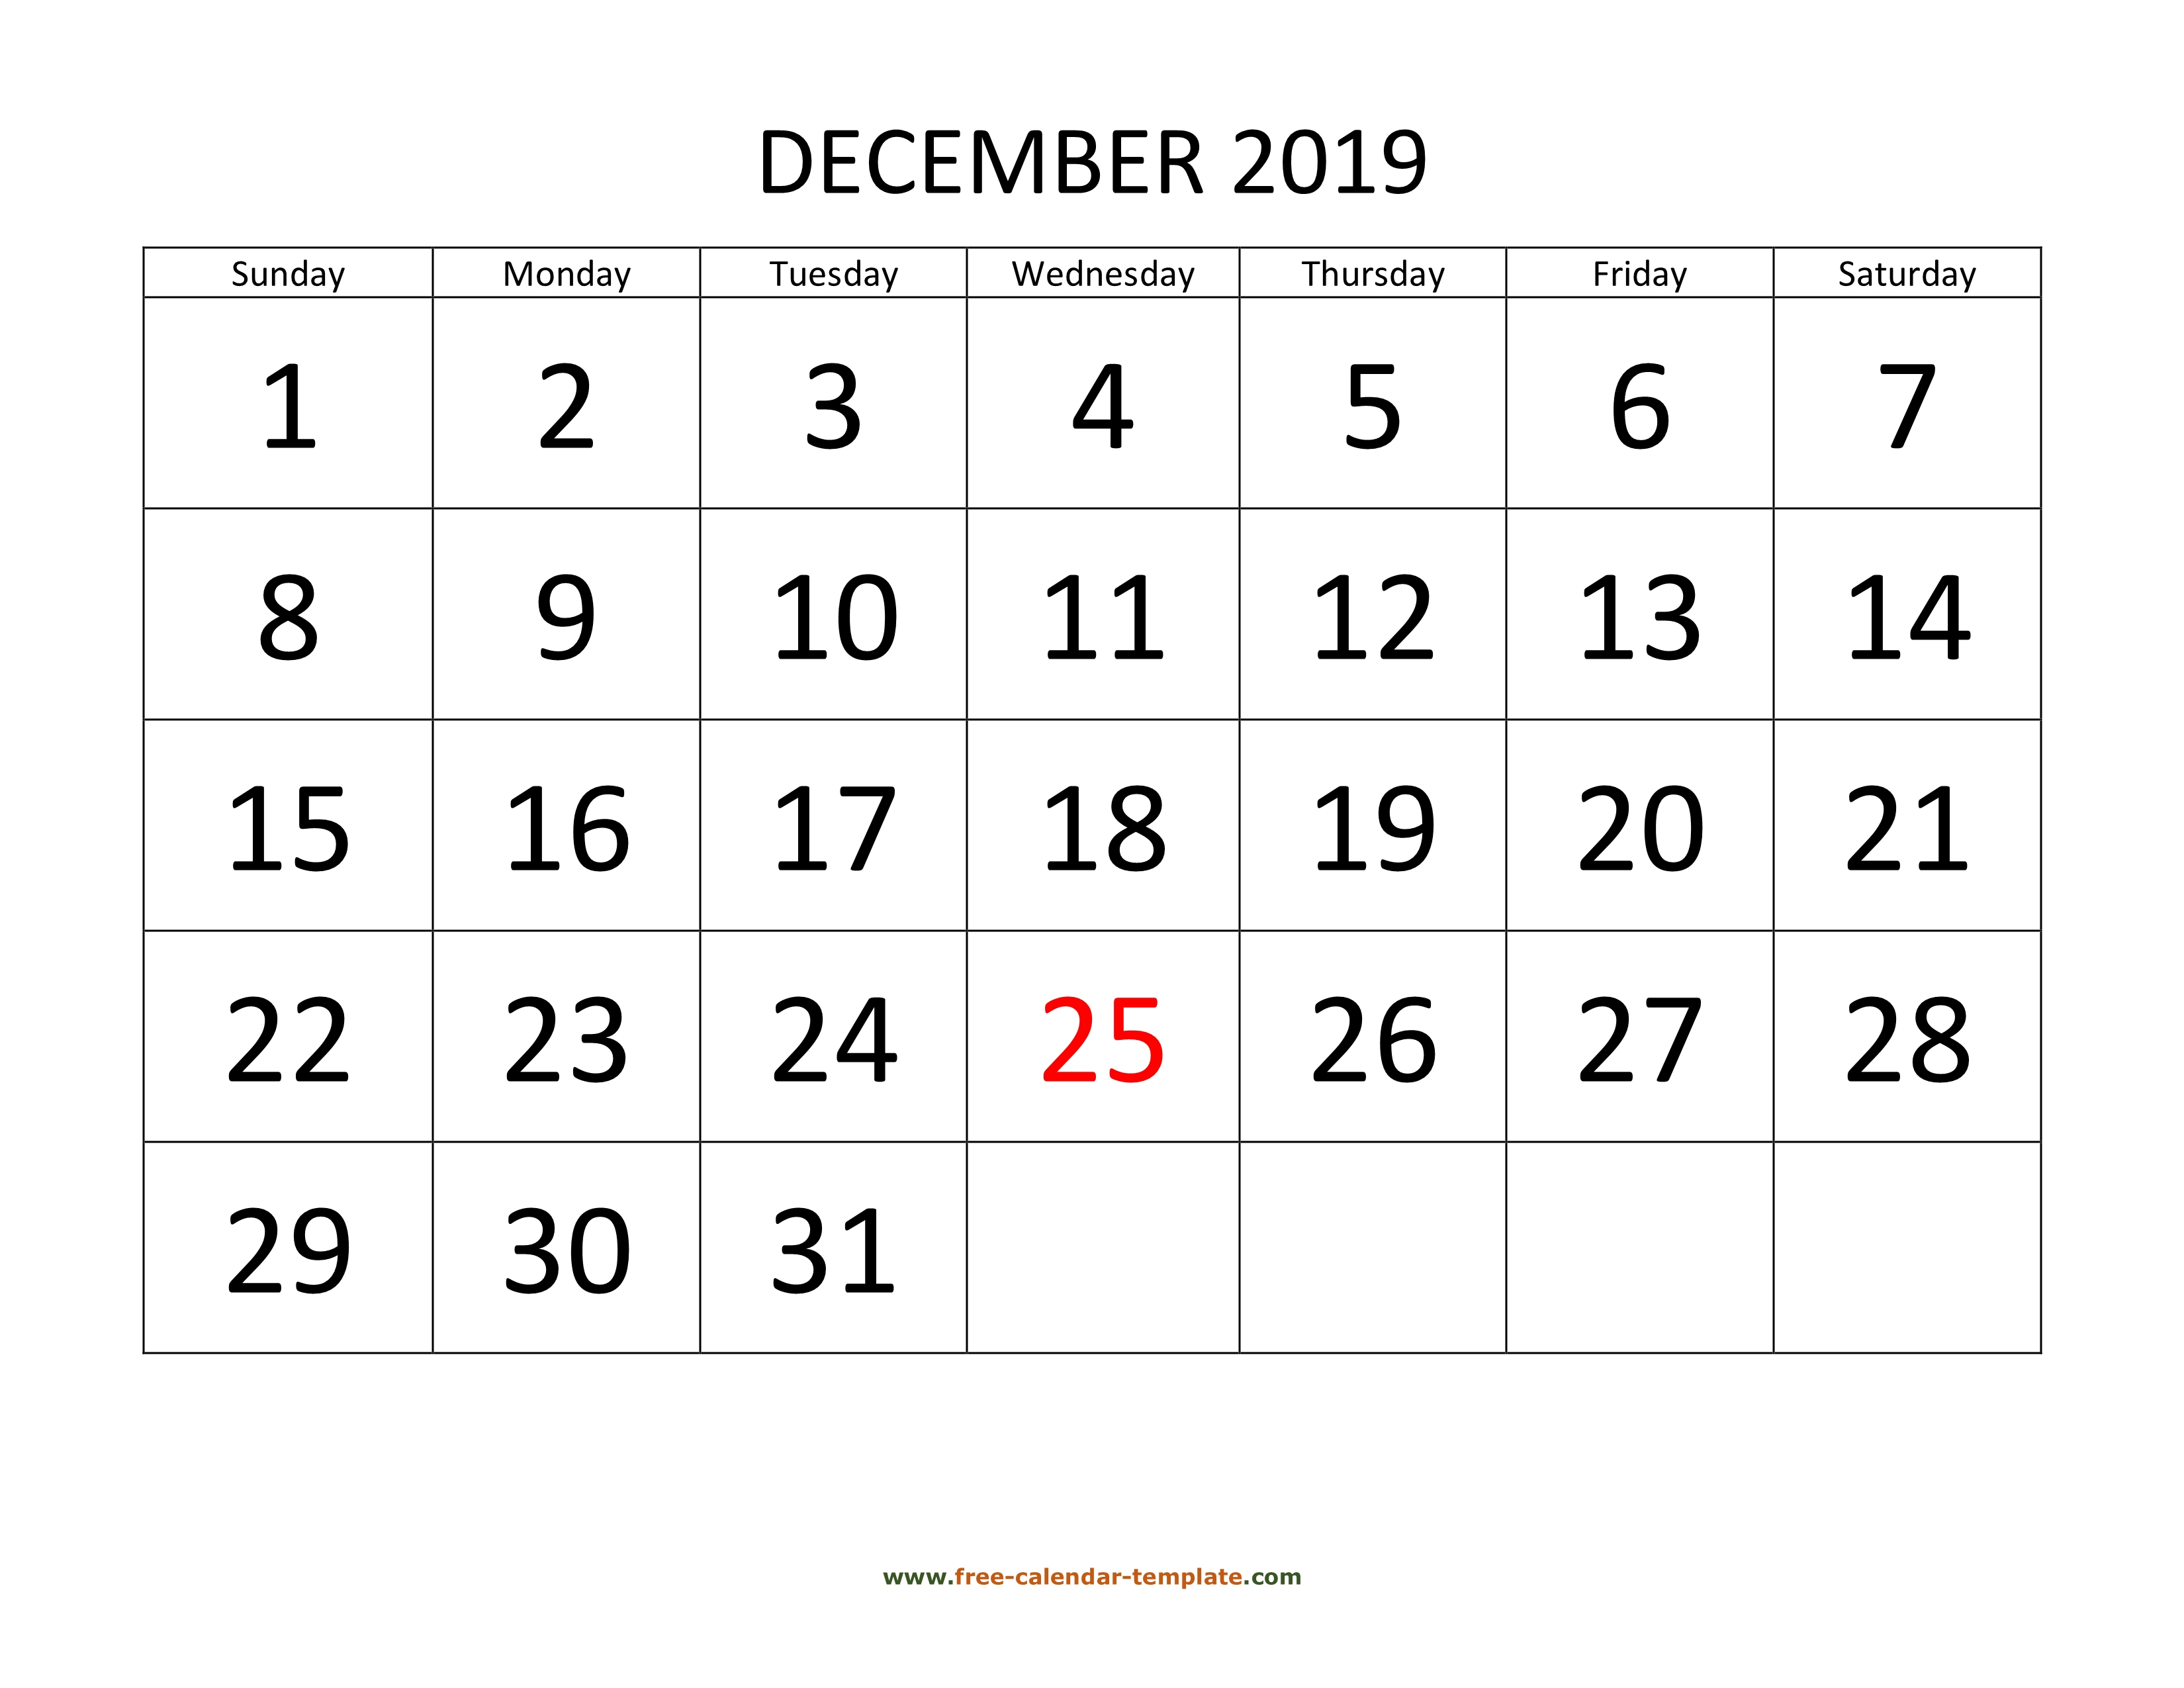 December 2019 Free Calendar Tempplate | Freecalendar pertaining to Free Monthly Calendars That Can Be Edited